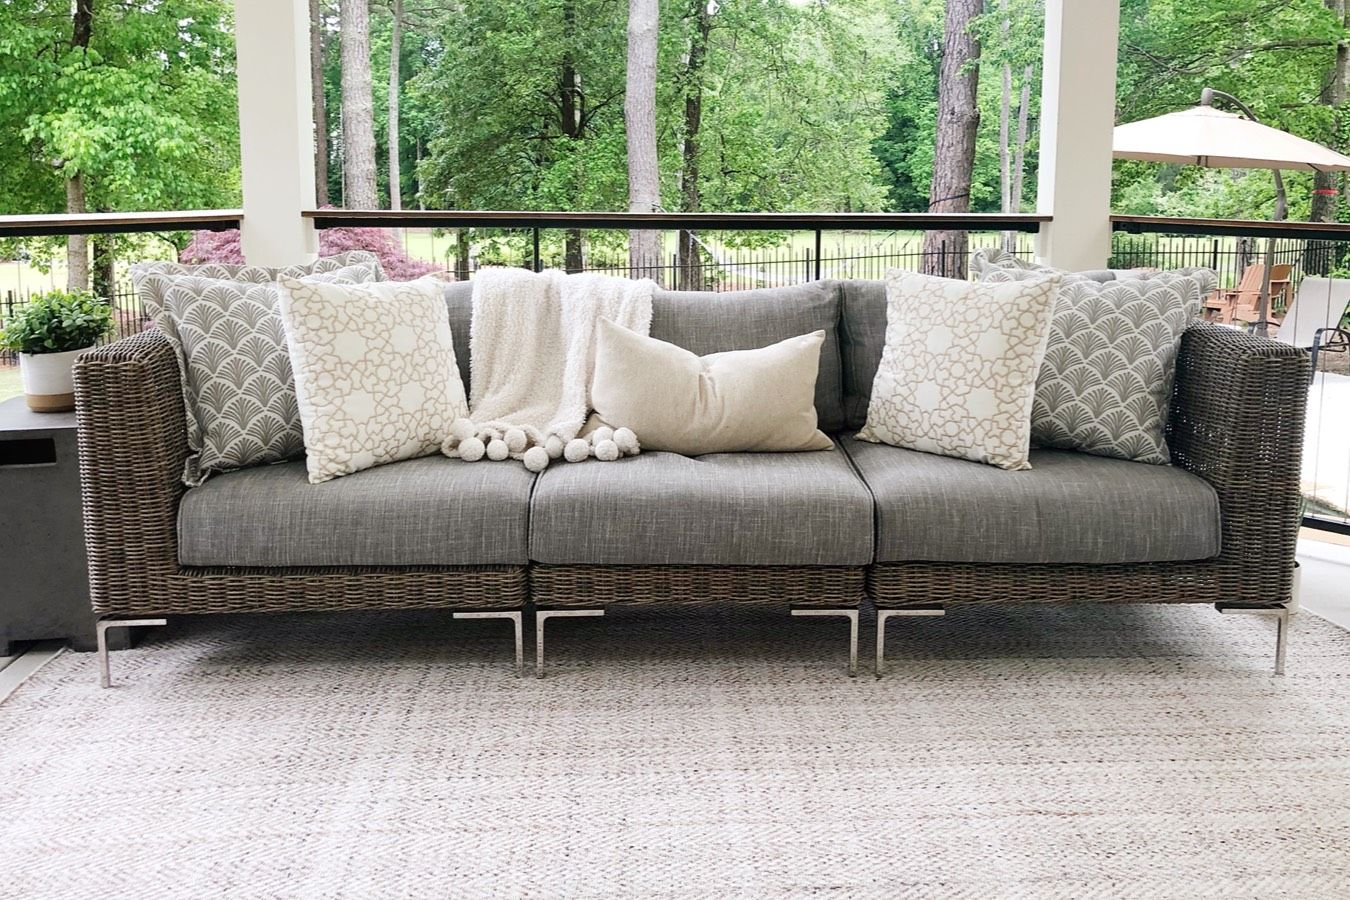 A styled modular outdoor furniture with grey cushions and a throw blanket